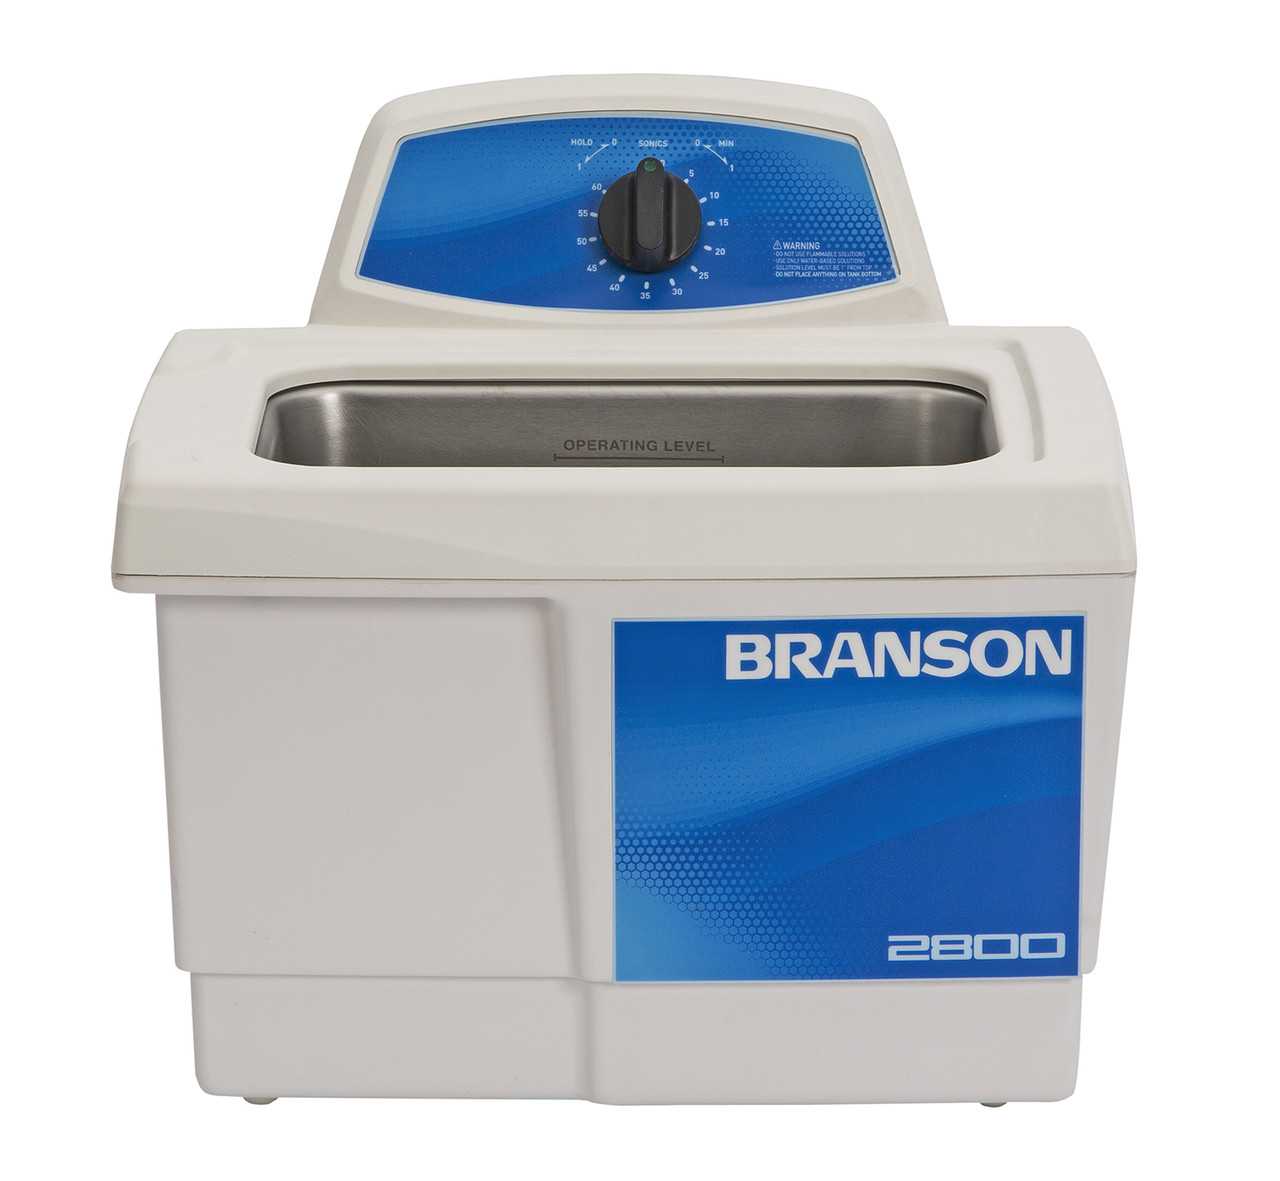 Branson M3800 Ultrasonic Cleaner